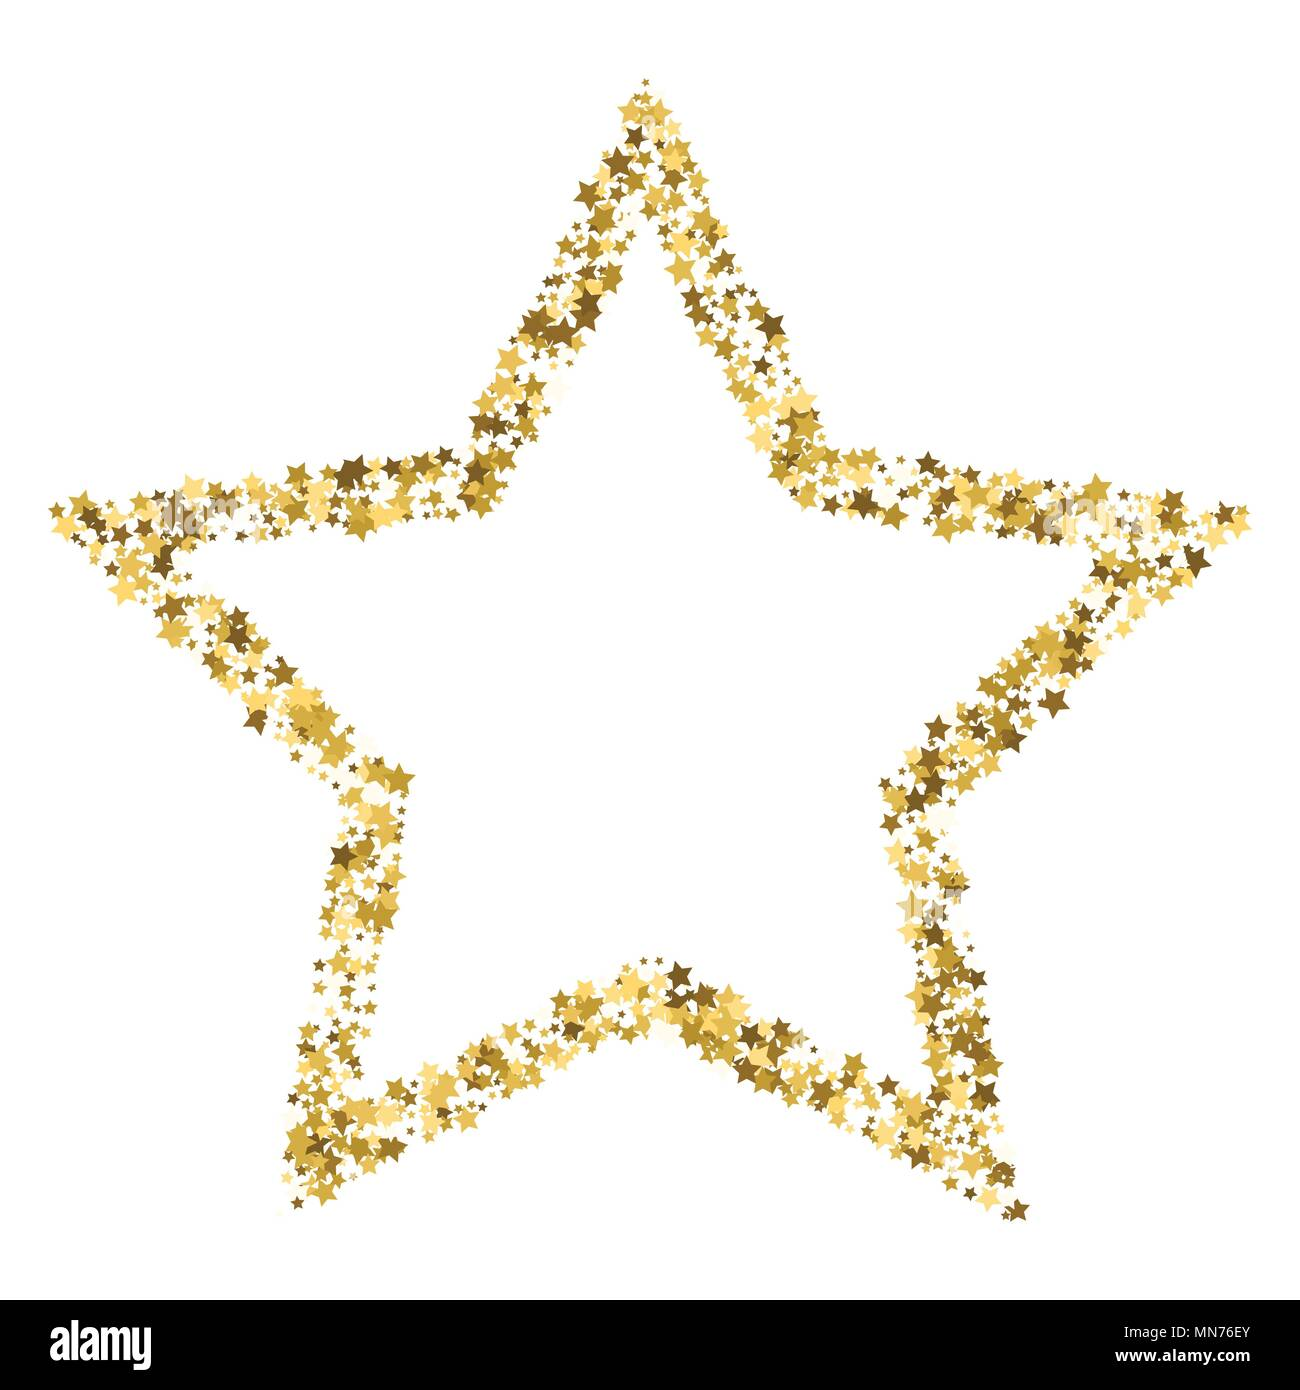 Golden Star Vector Banner On White Background Gold Glitter Star